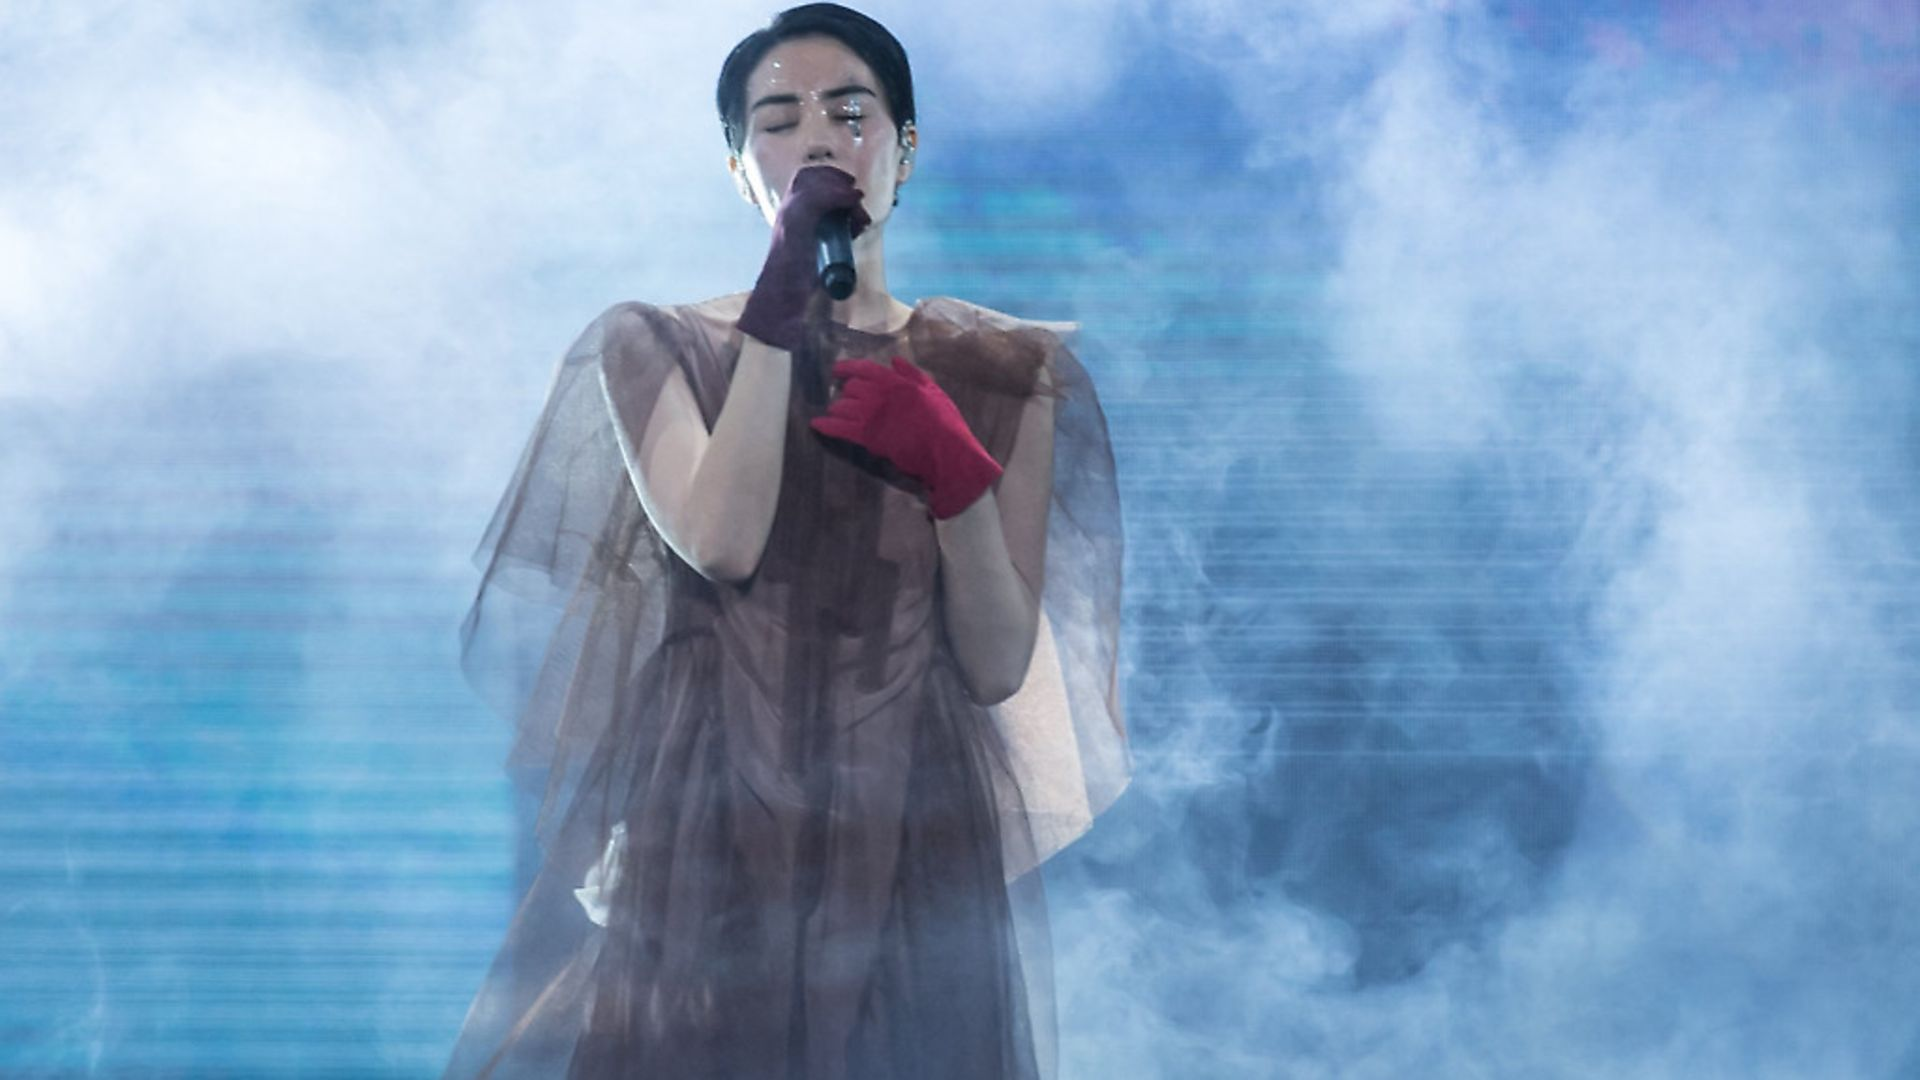 """Singer Faye Wong performs onstage during her concert """"Faye's Moments Live 2016"""" at Shanghai. Photo: Getty Images - Credit: Visual China Group via Getty Ima"""